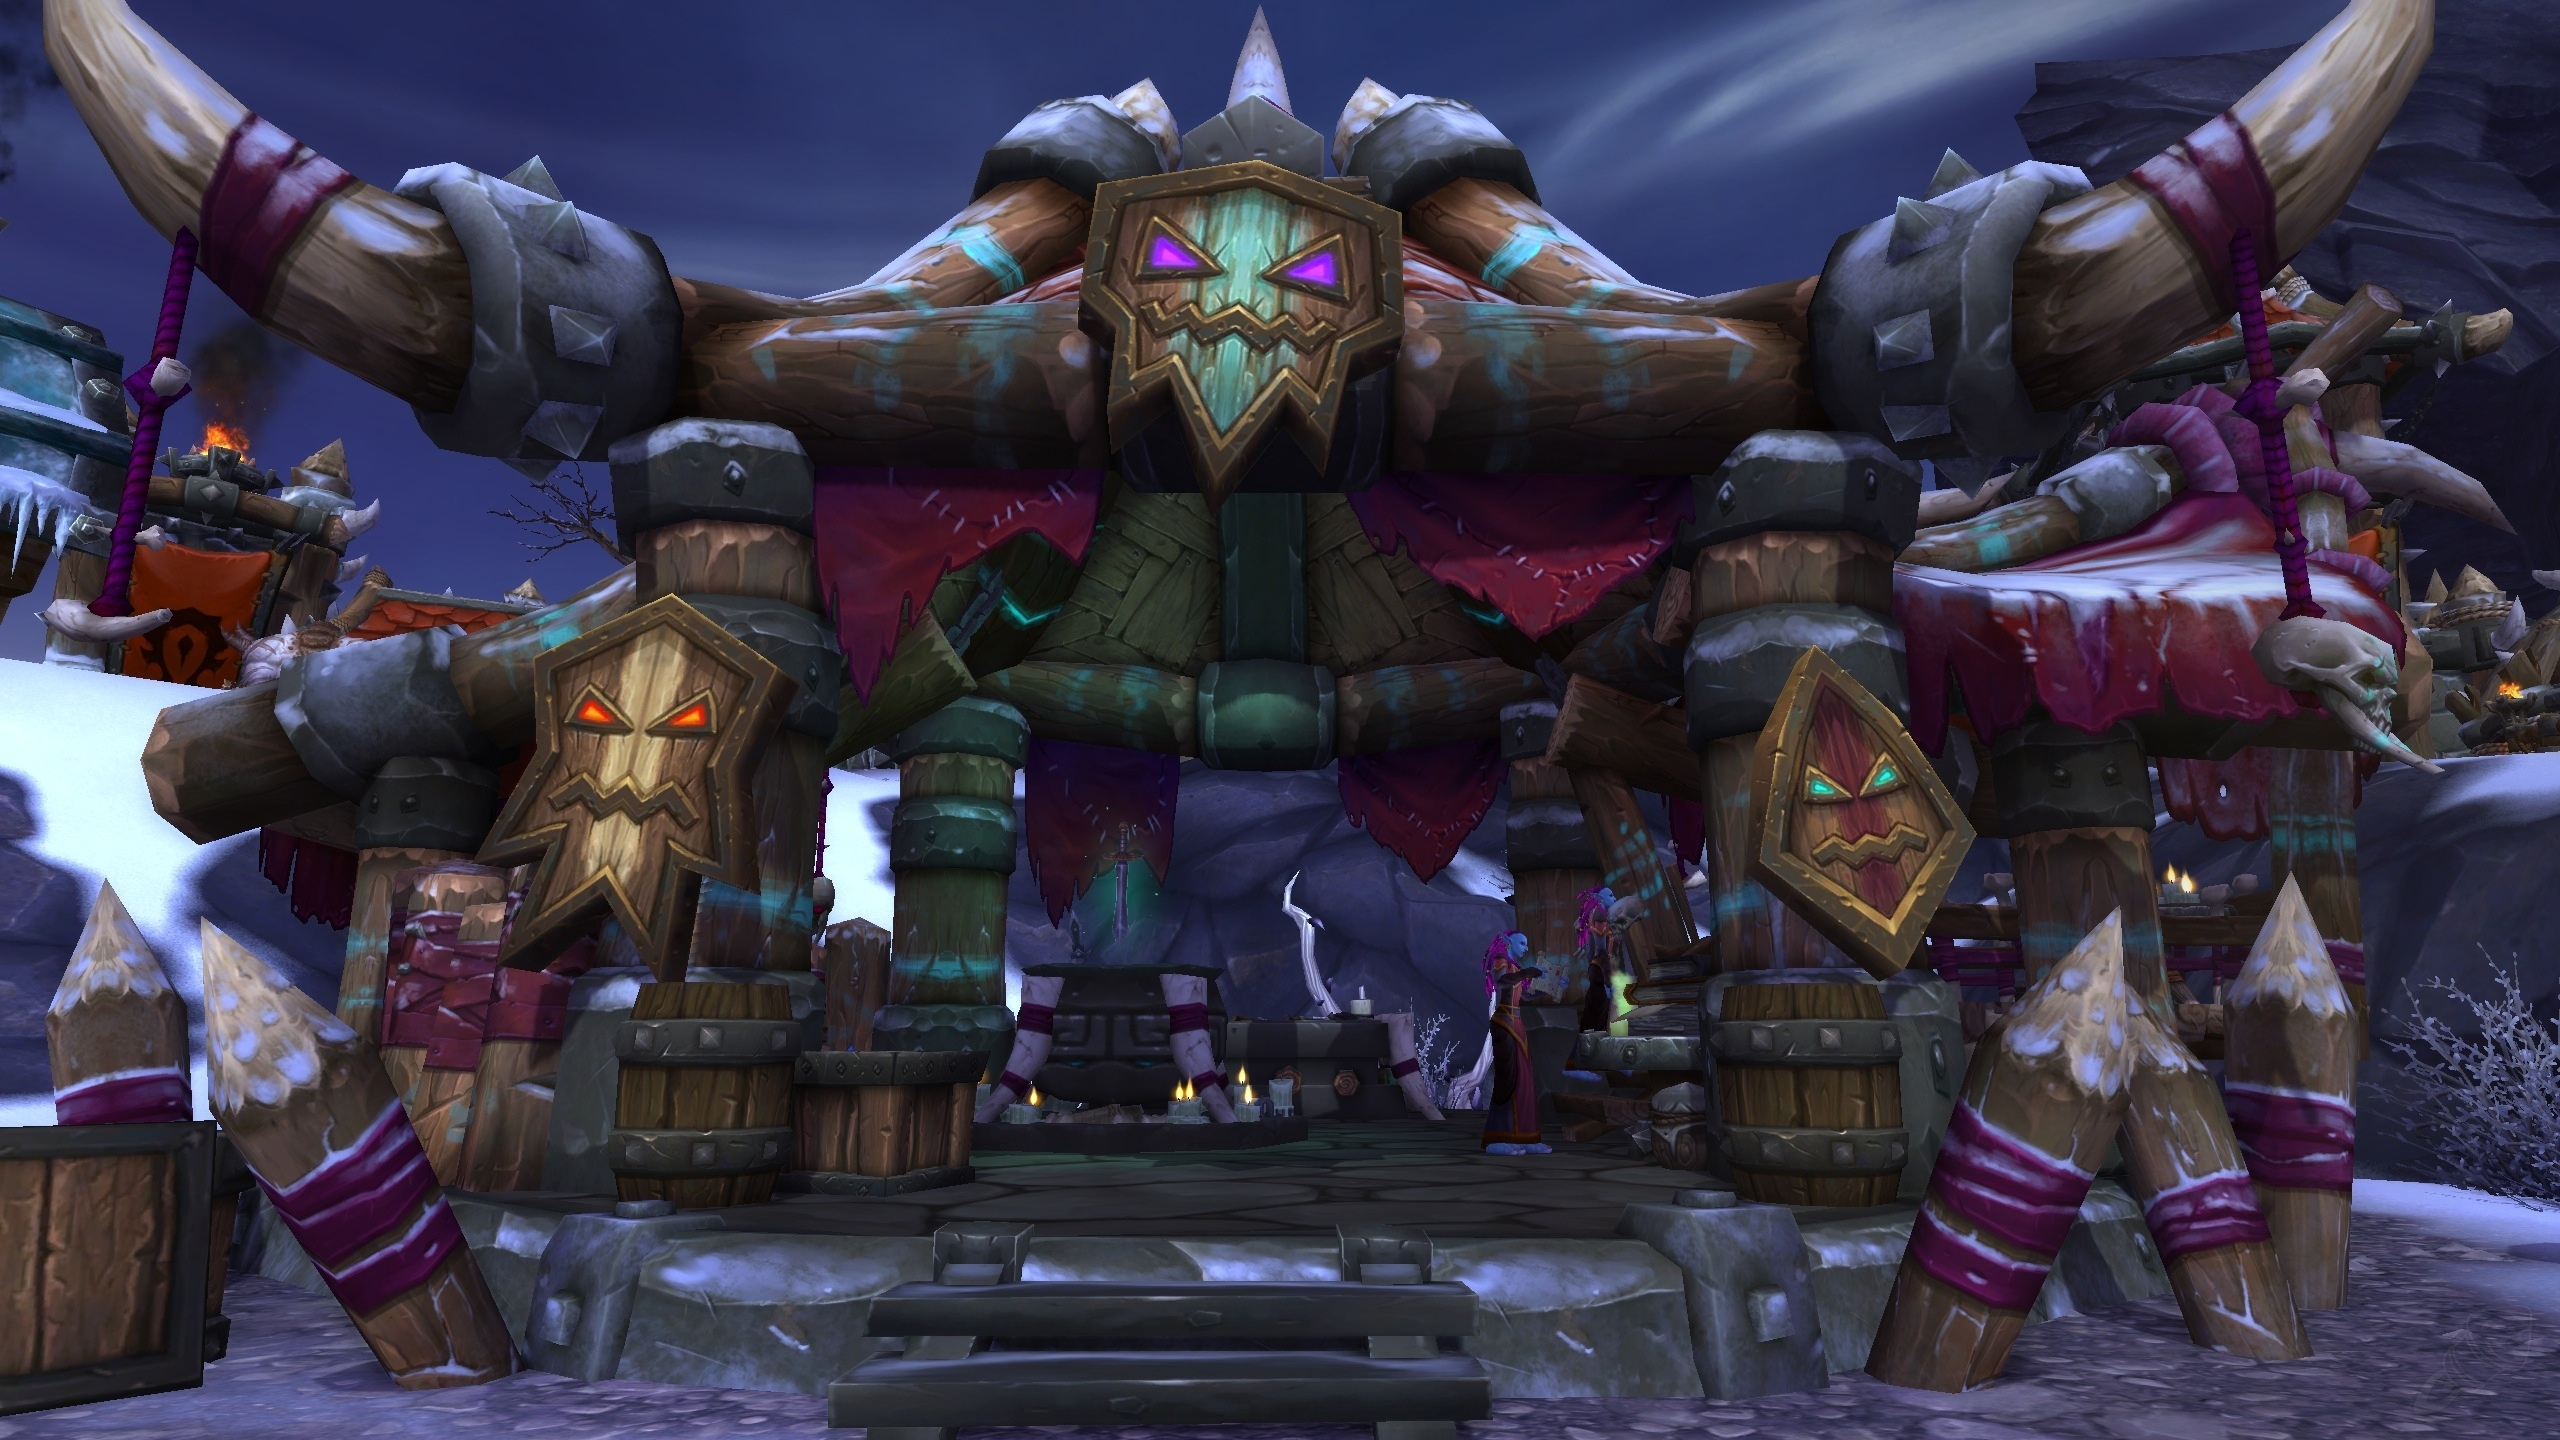 Guide to the garrison enchanters study guides wowhead return to table of contents malvernweather Image collections